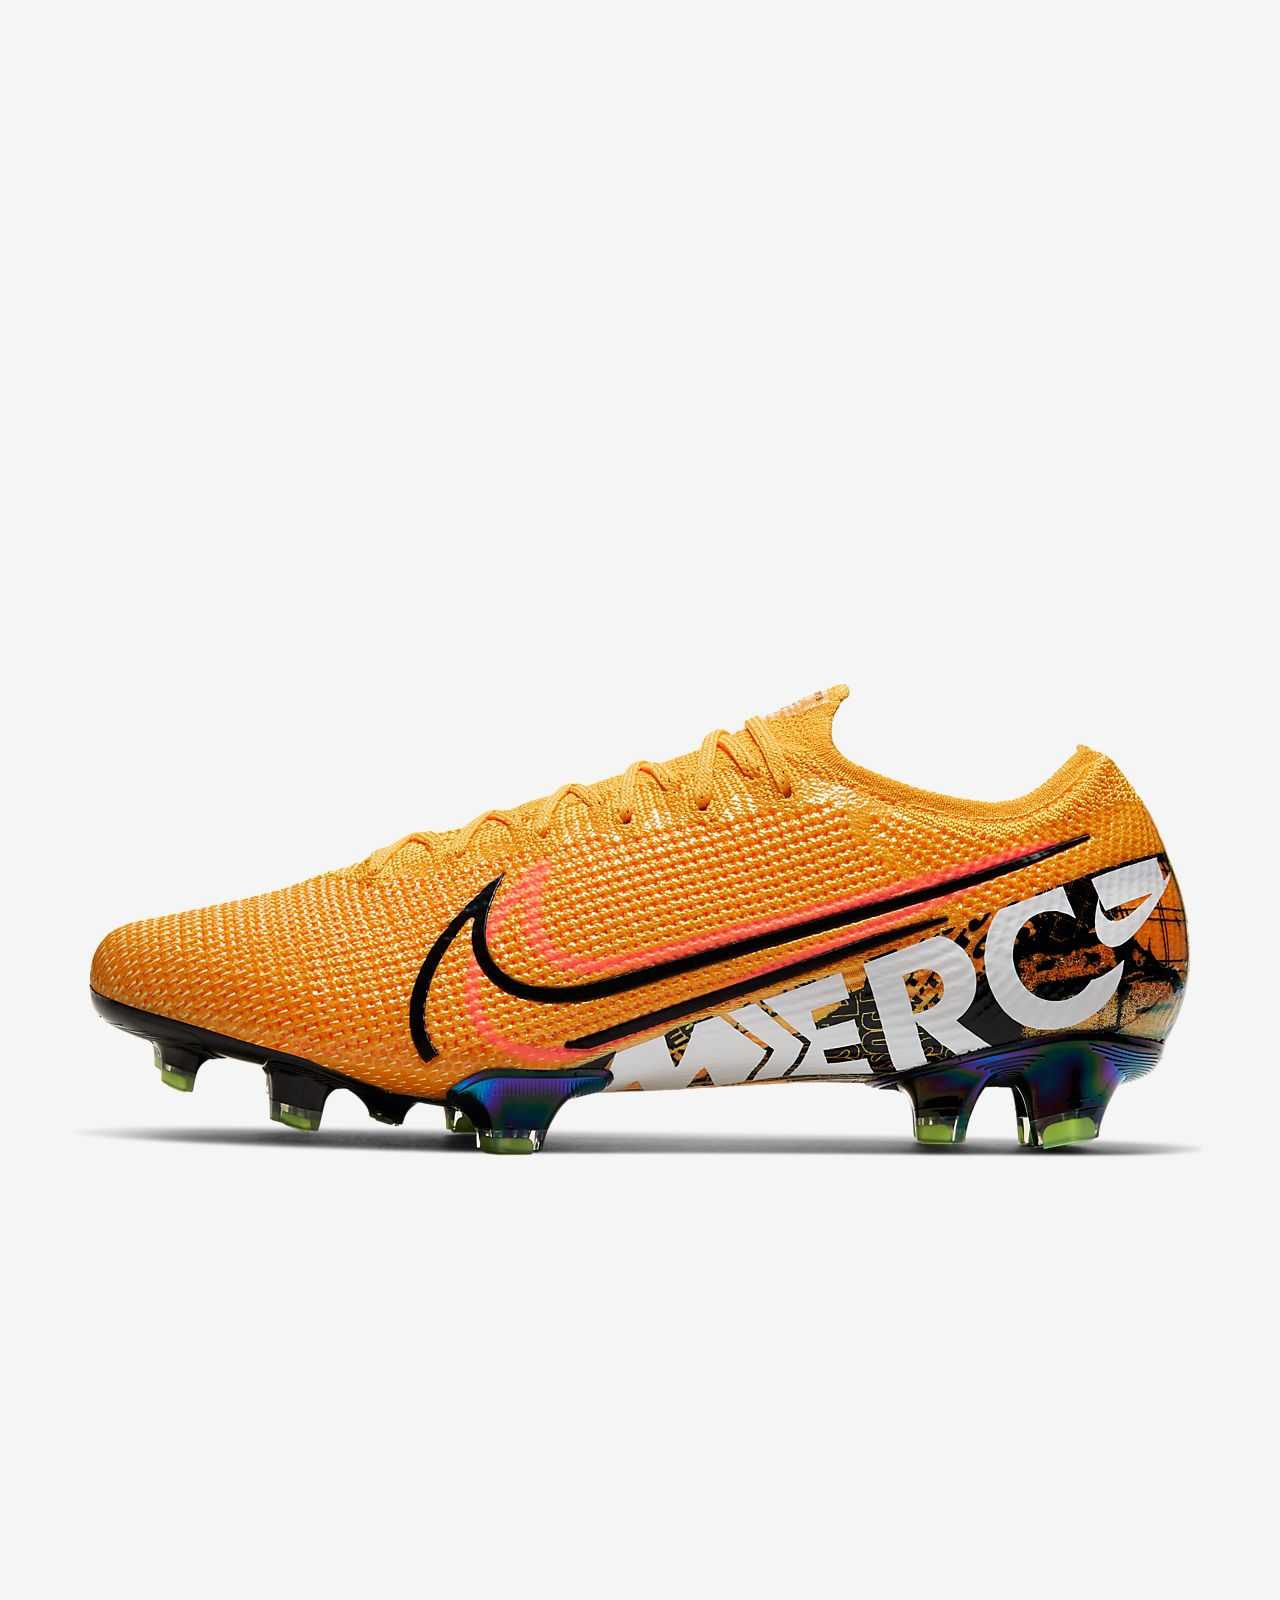 8c7df1fcb101e Nike Mercurial Vapor 13 Elite SE FG Firm-Ground Soccer Cleat